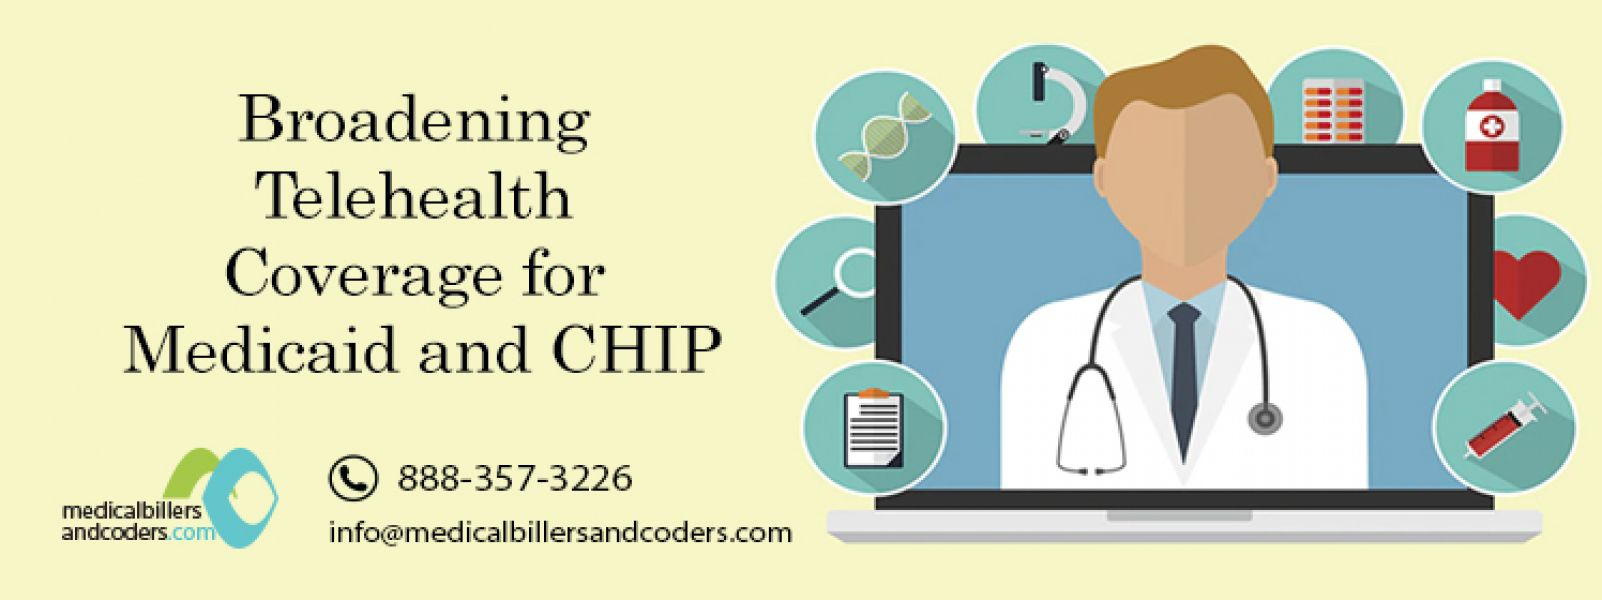 Broadening Telehealth Coverage for Medicaid and CHIP